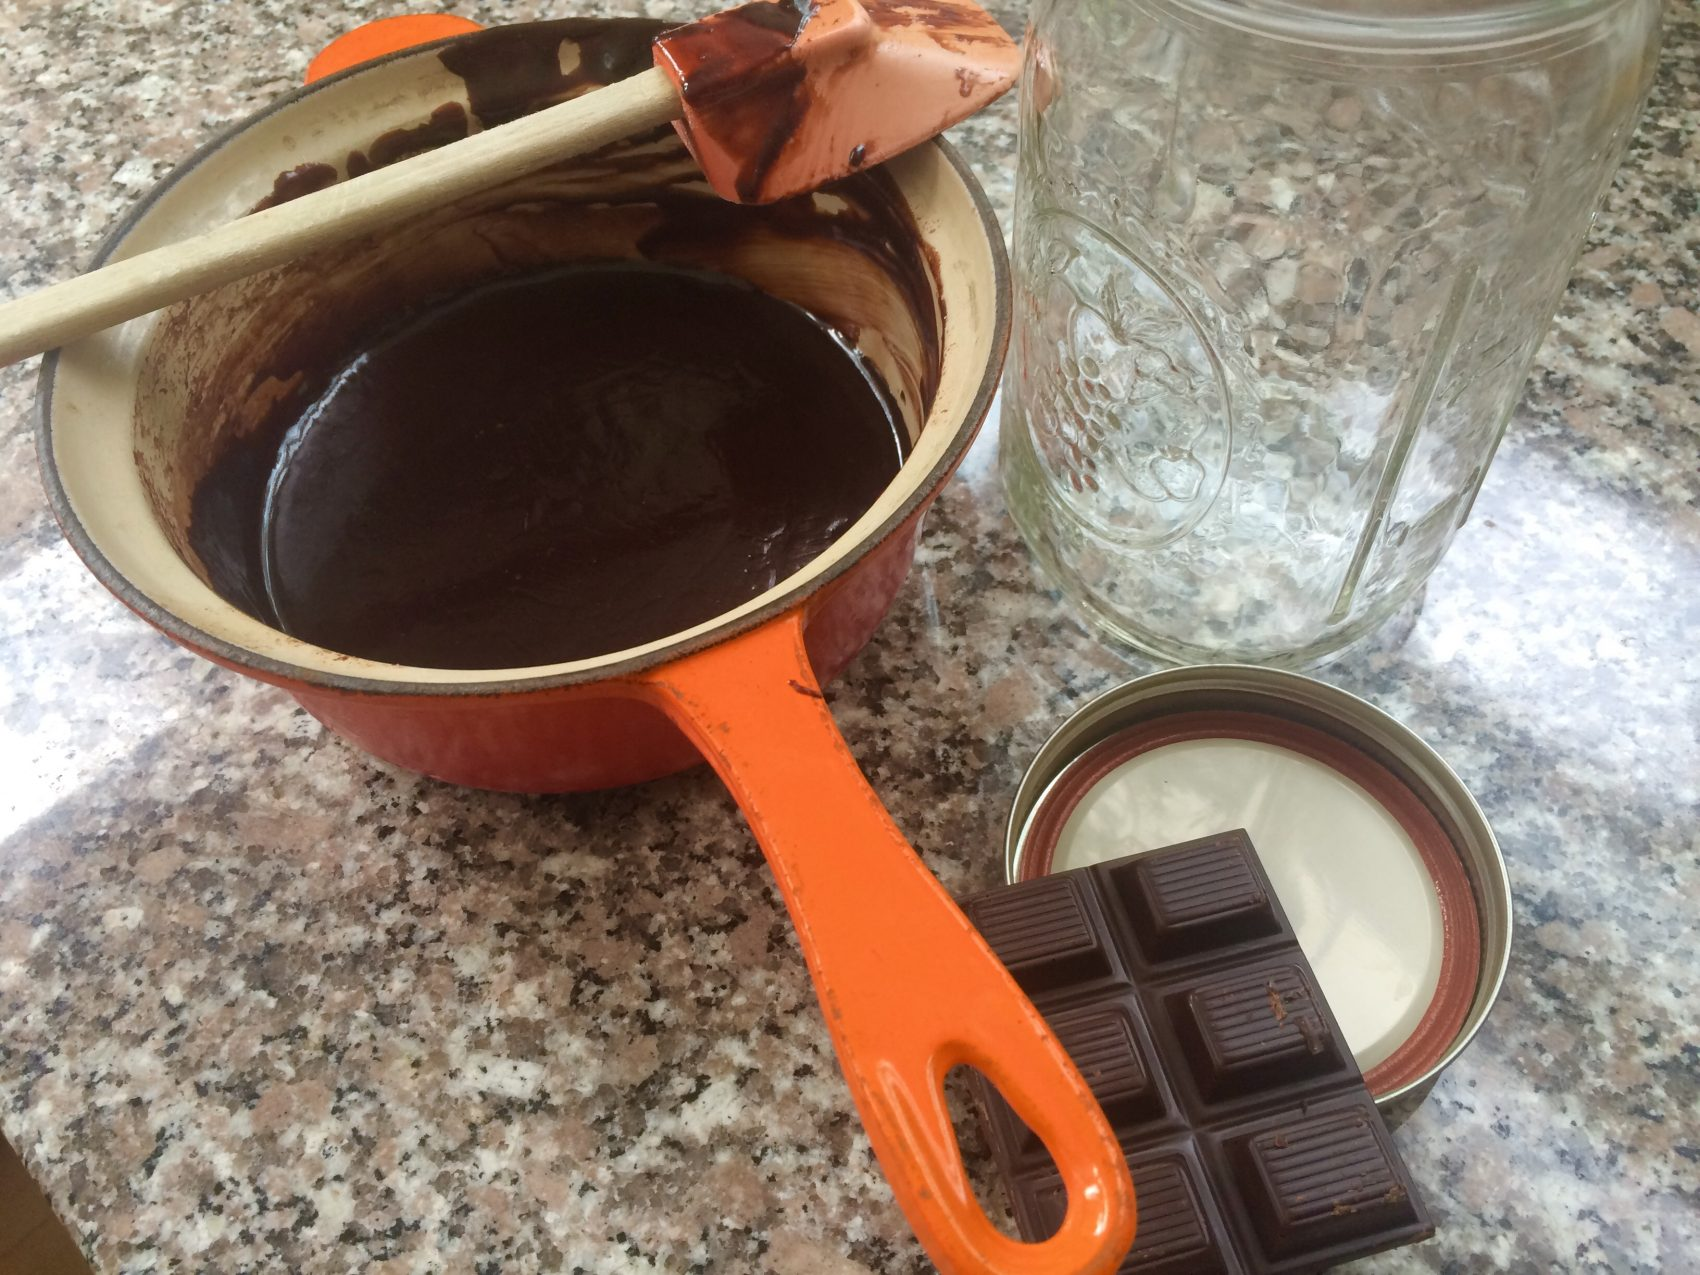 A pot containing melted dark chocolate, the key ingredient for Kathy's hot fudge sauce. (Kathy Gunst for Here & Now)